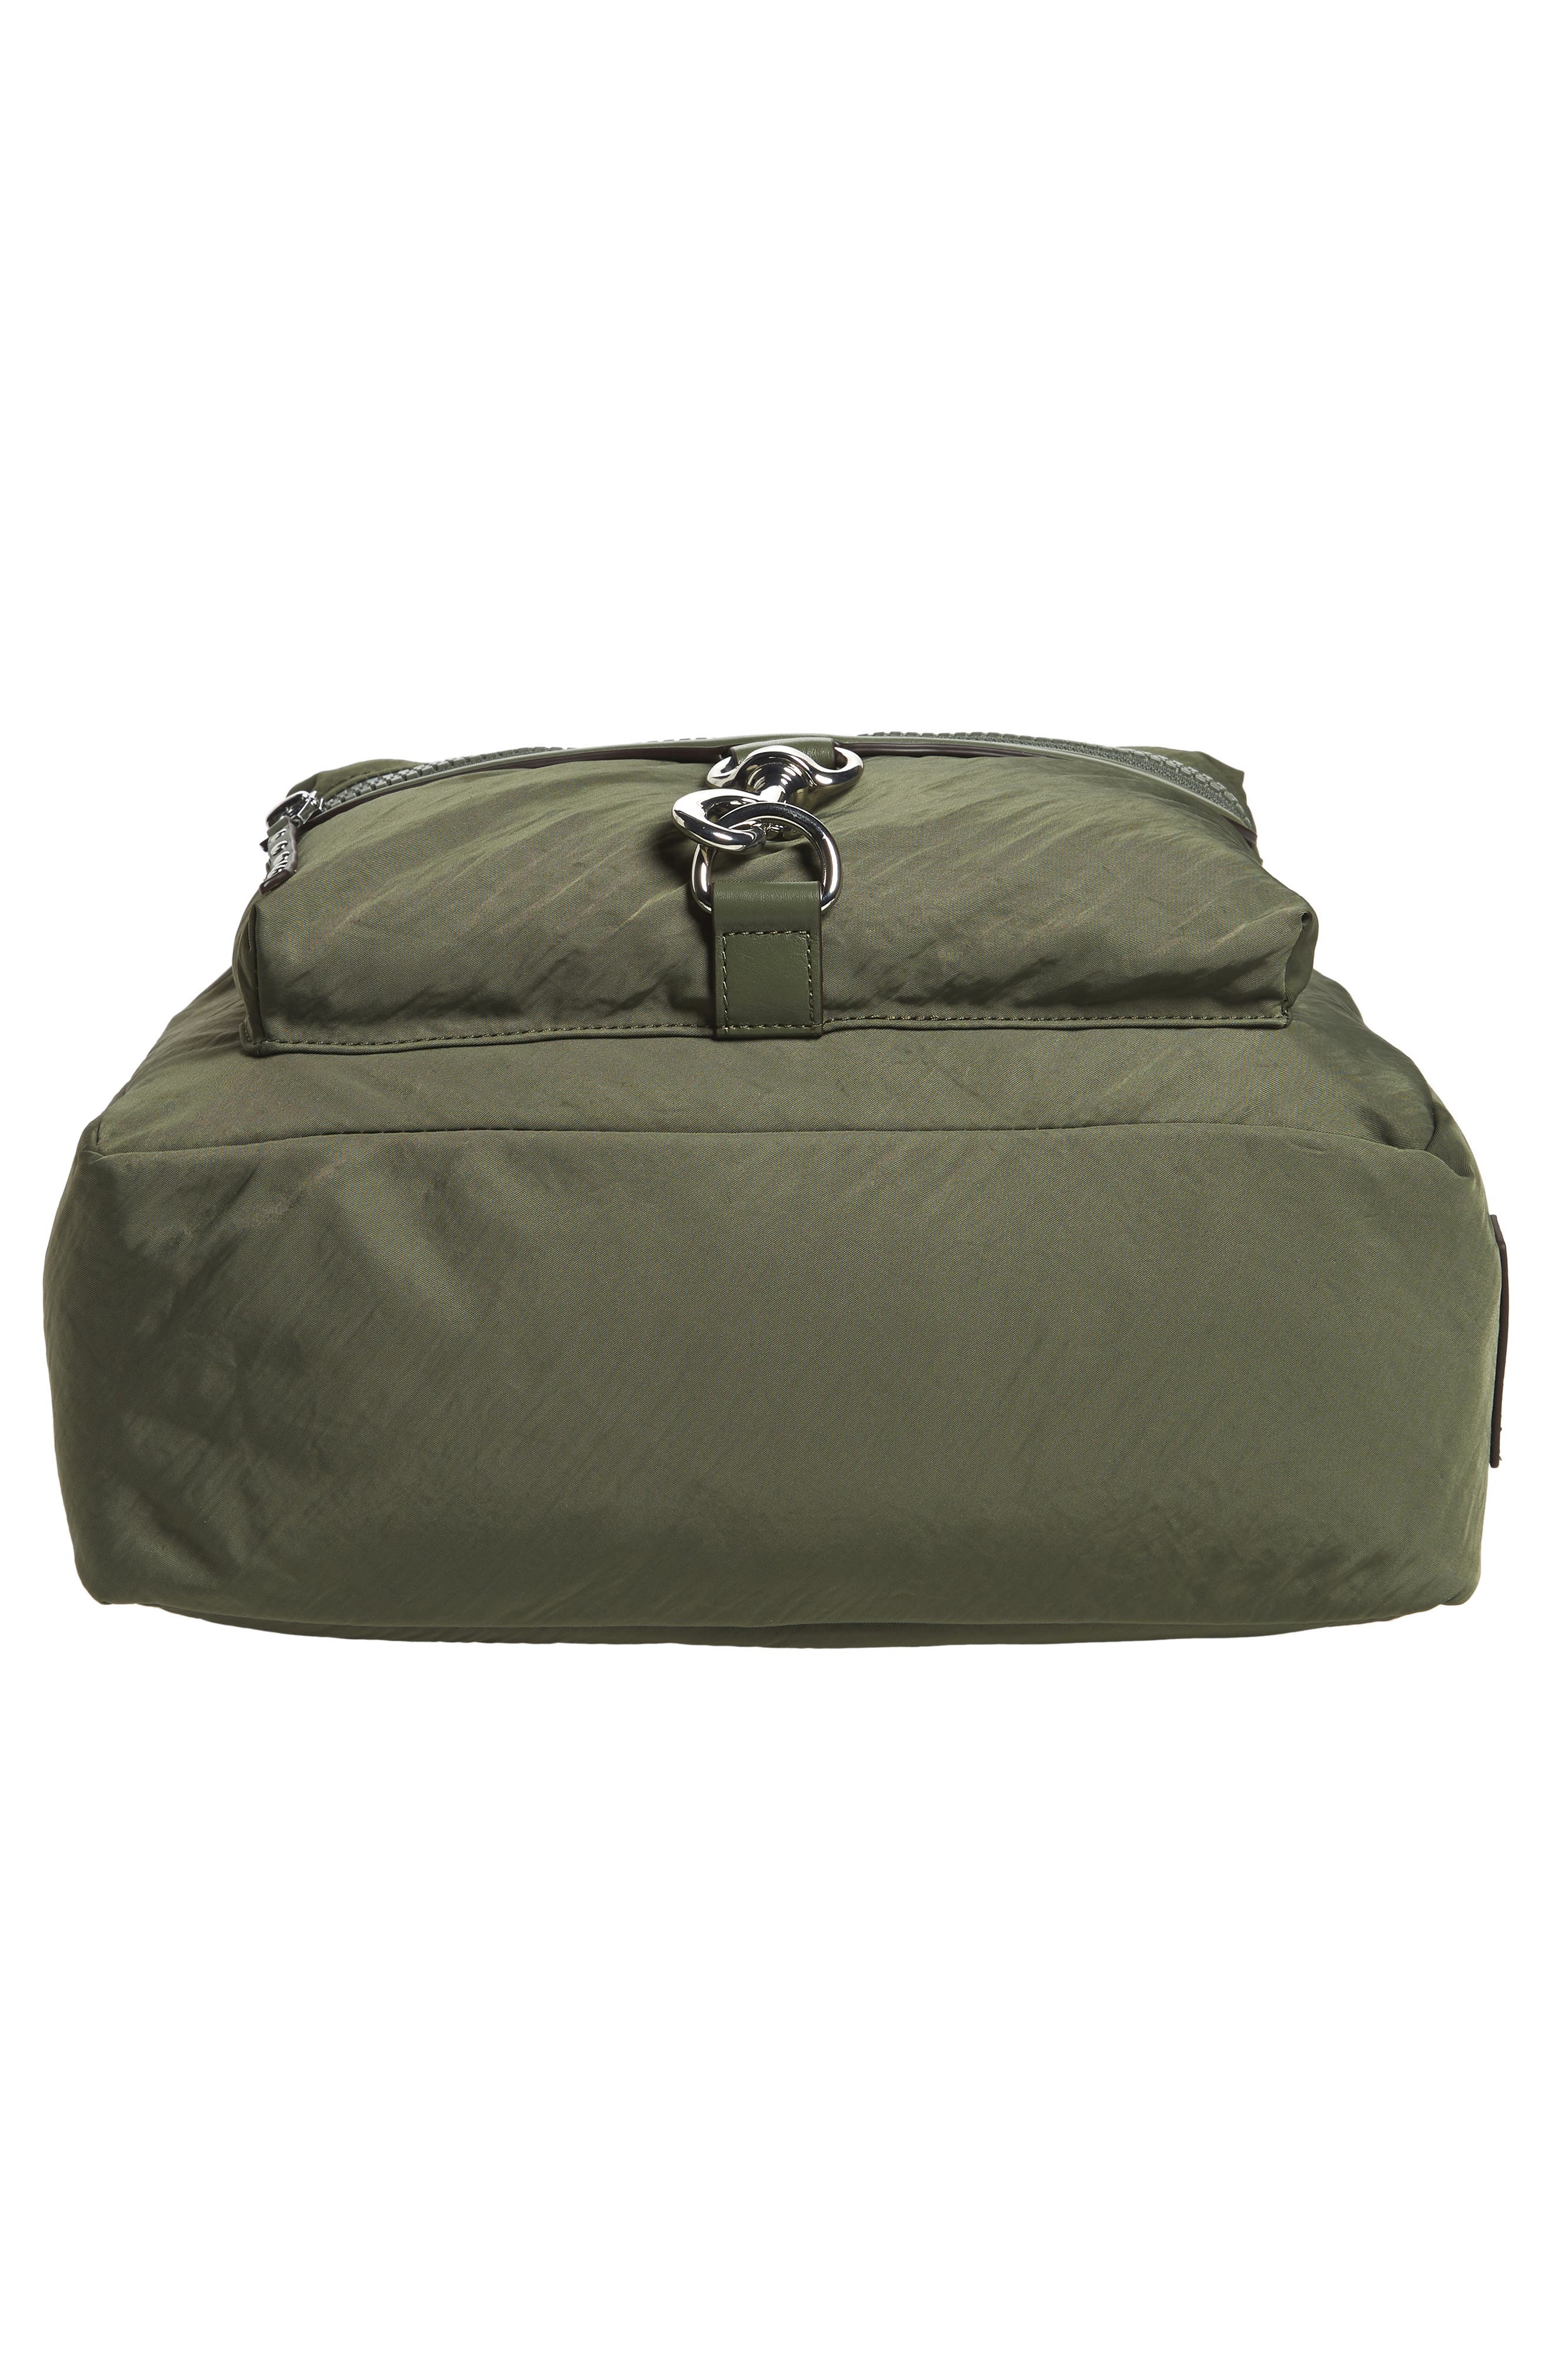 Always On MAB Backpack,                             Alternate thumbnail 6, color,                             Olive